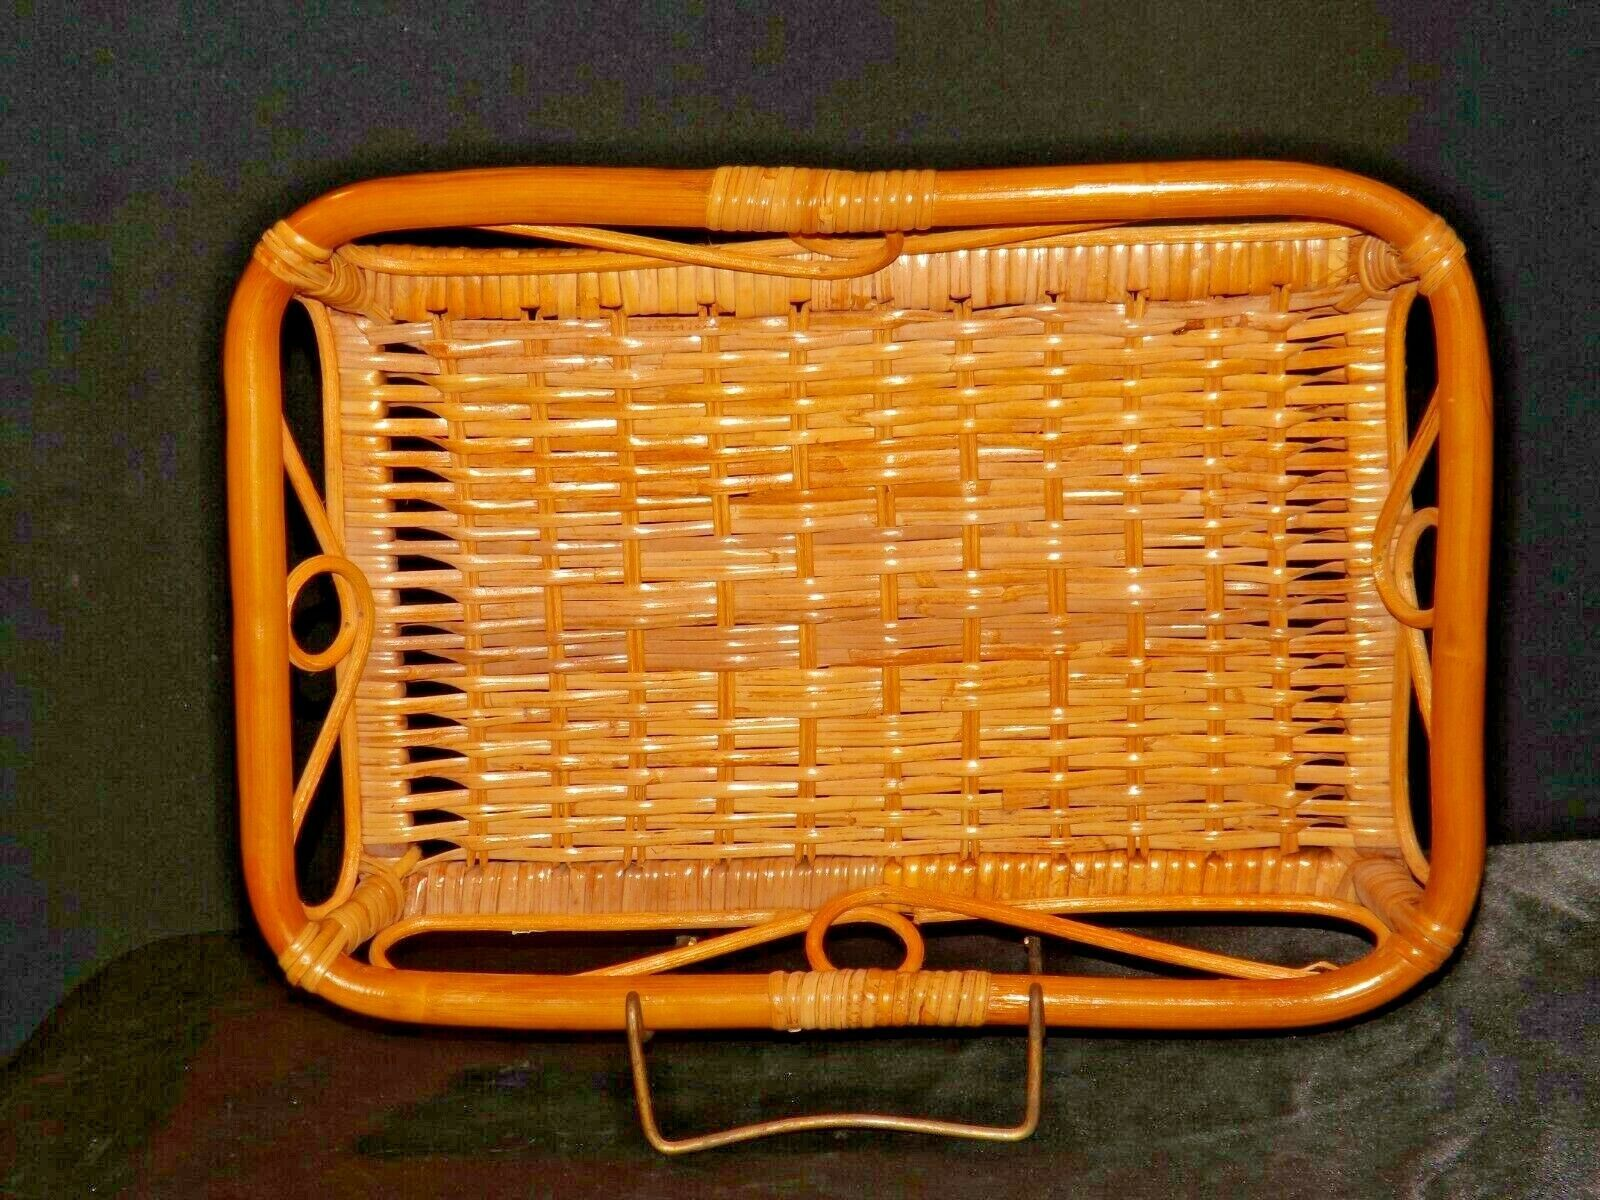 Serving Tray Wicker Basket AA-191707 Vintage Collectible